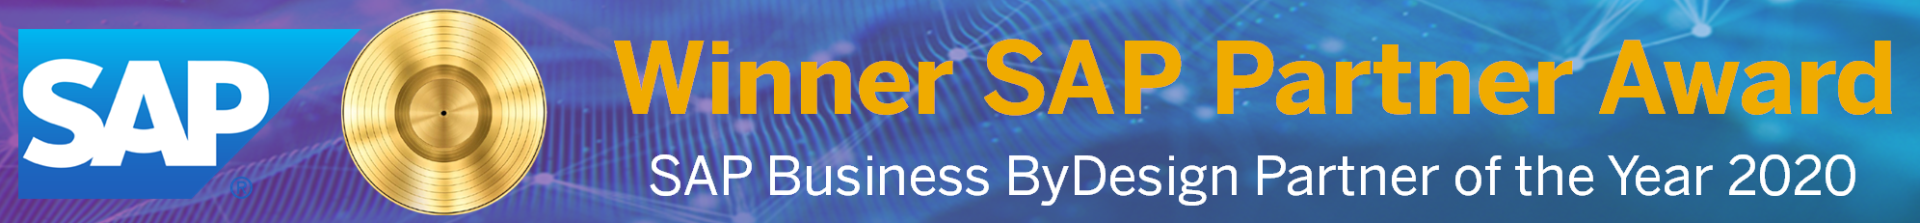 SAP Business ByDesign Partner of the Year 2020